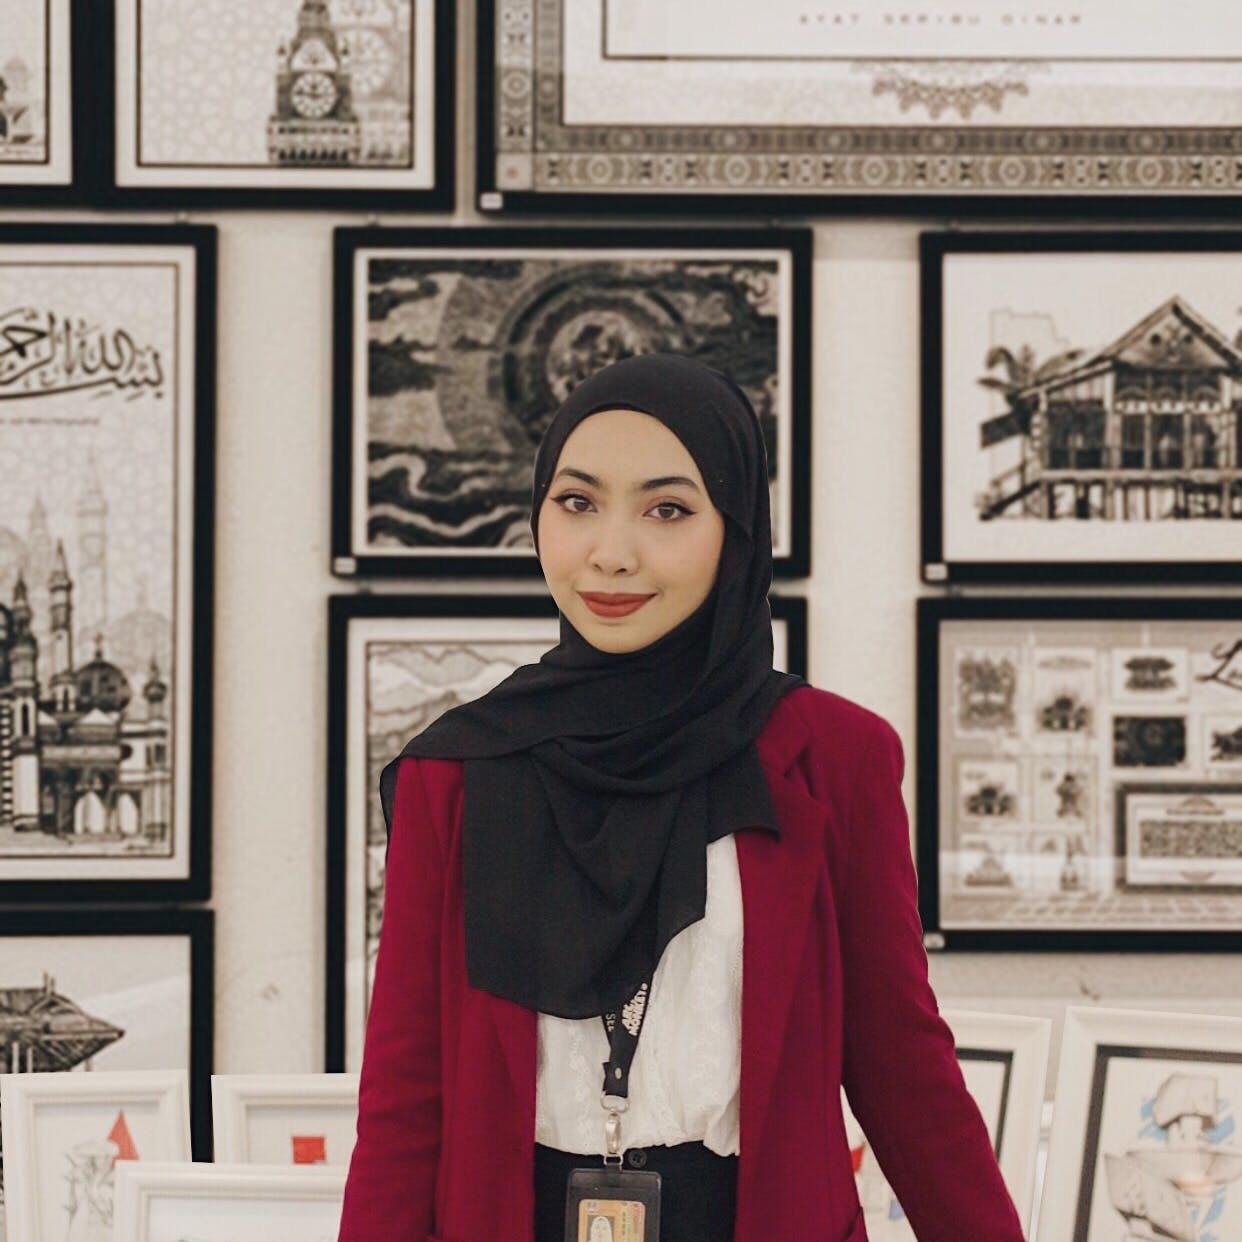 Photo of an artist in Malaysia